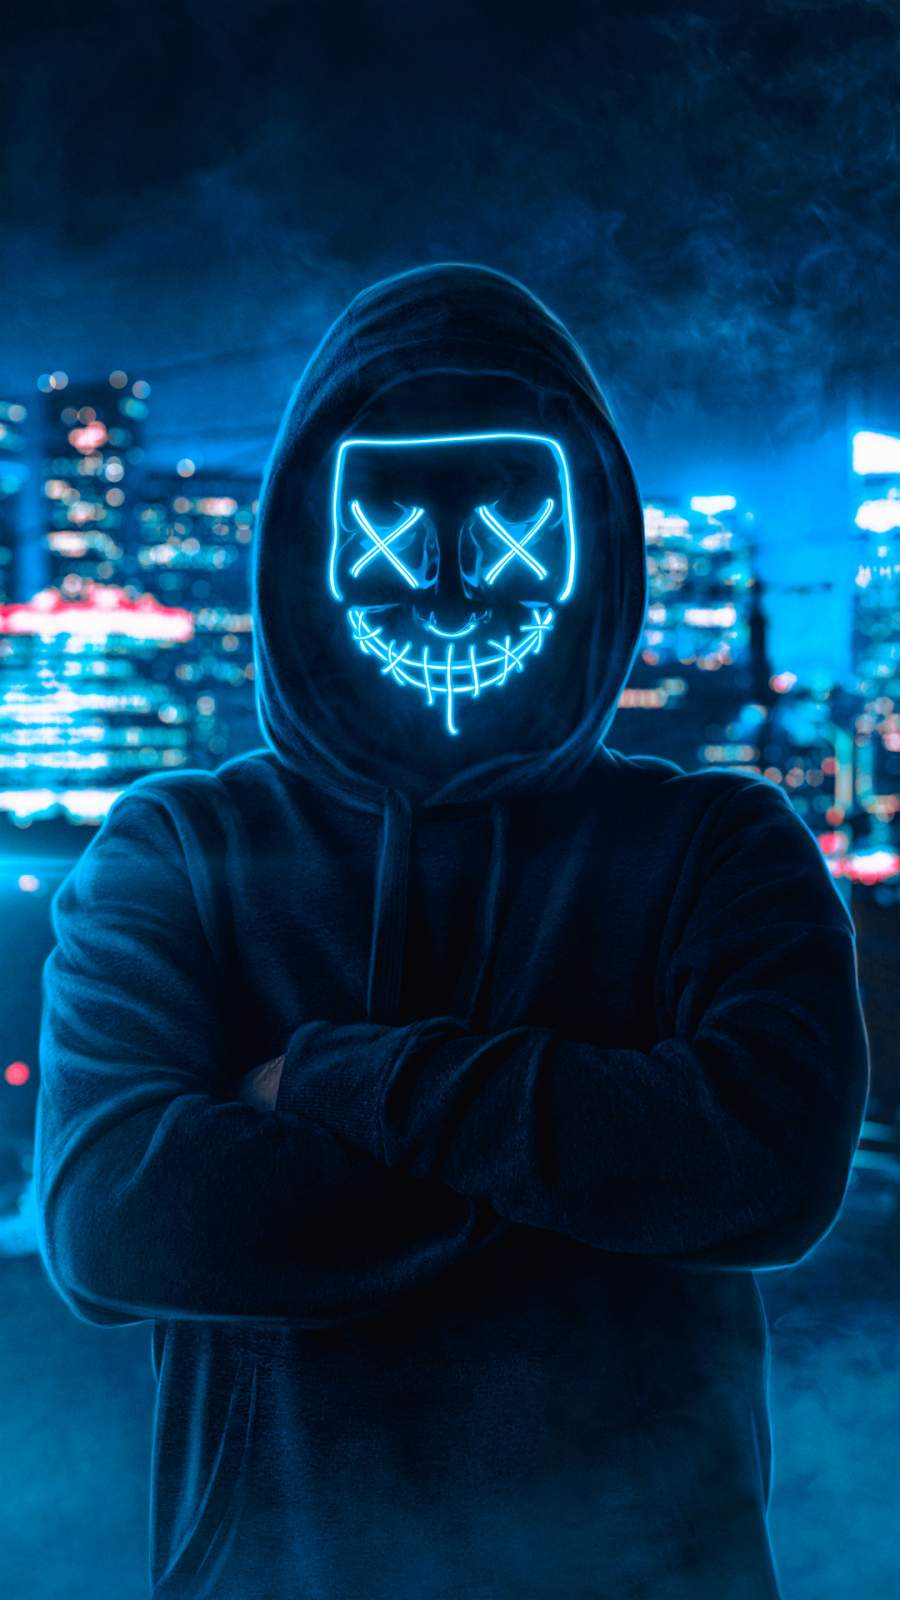 Neon Mask Hoodie Guy iPhone Wallpaper